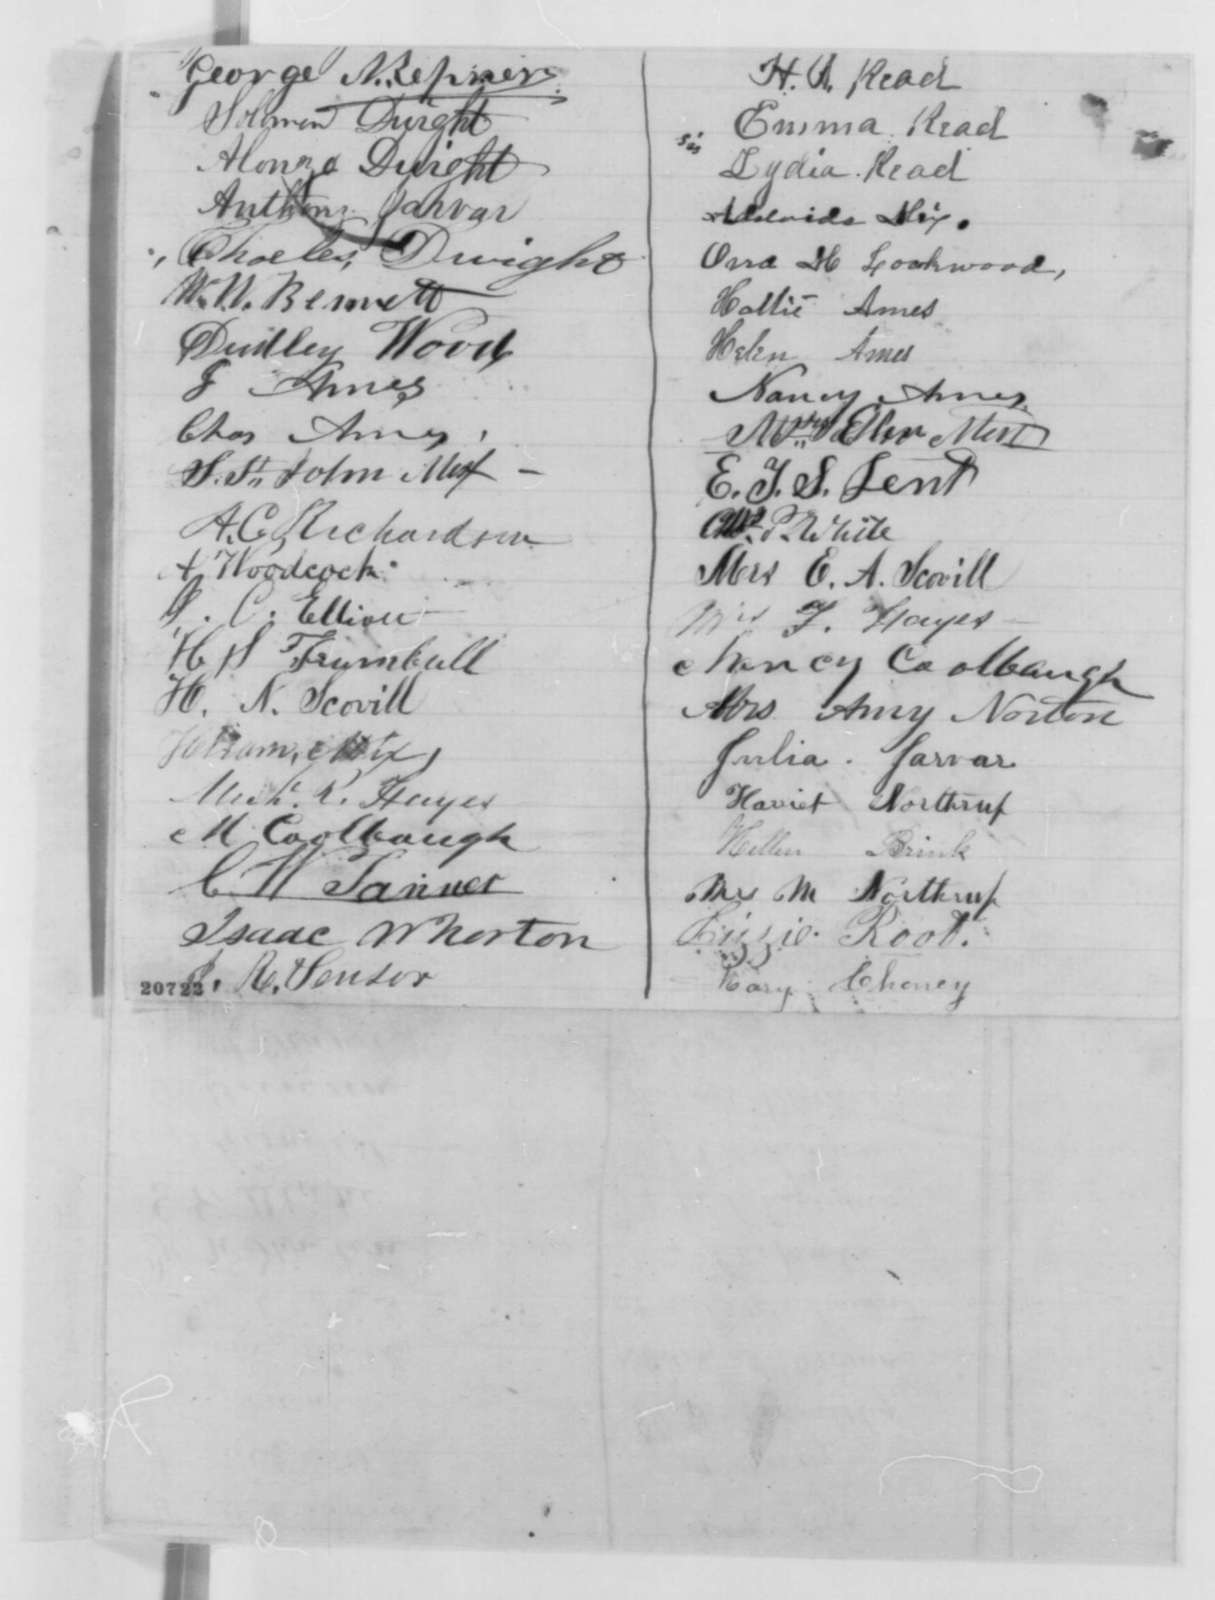 Illinois Citizens to Abraham Lincoln,  1862  (Petition recommending abolition of slavery)